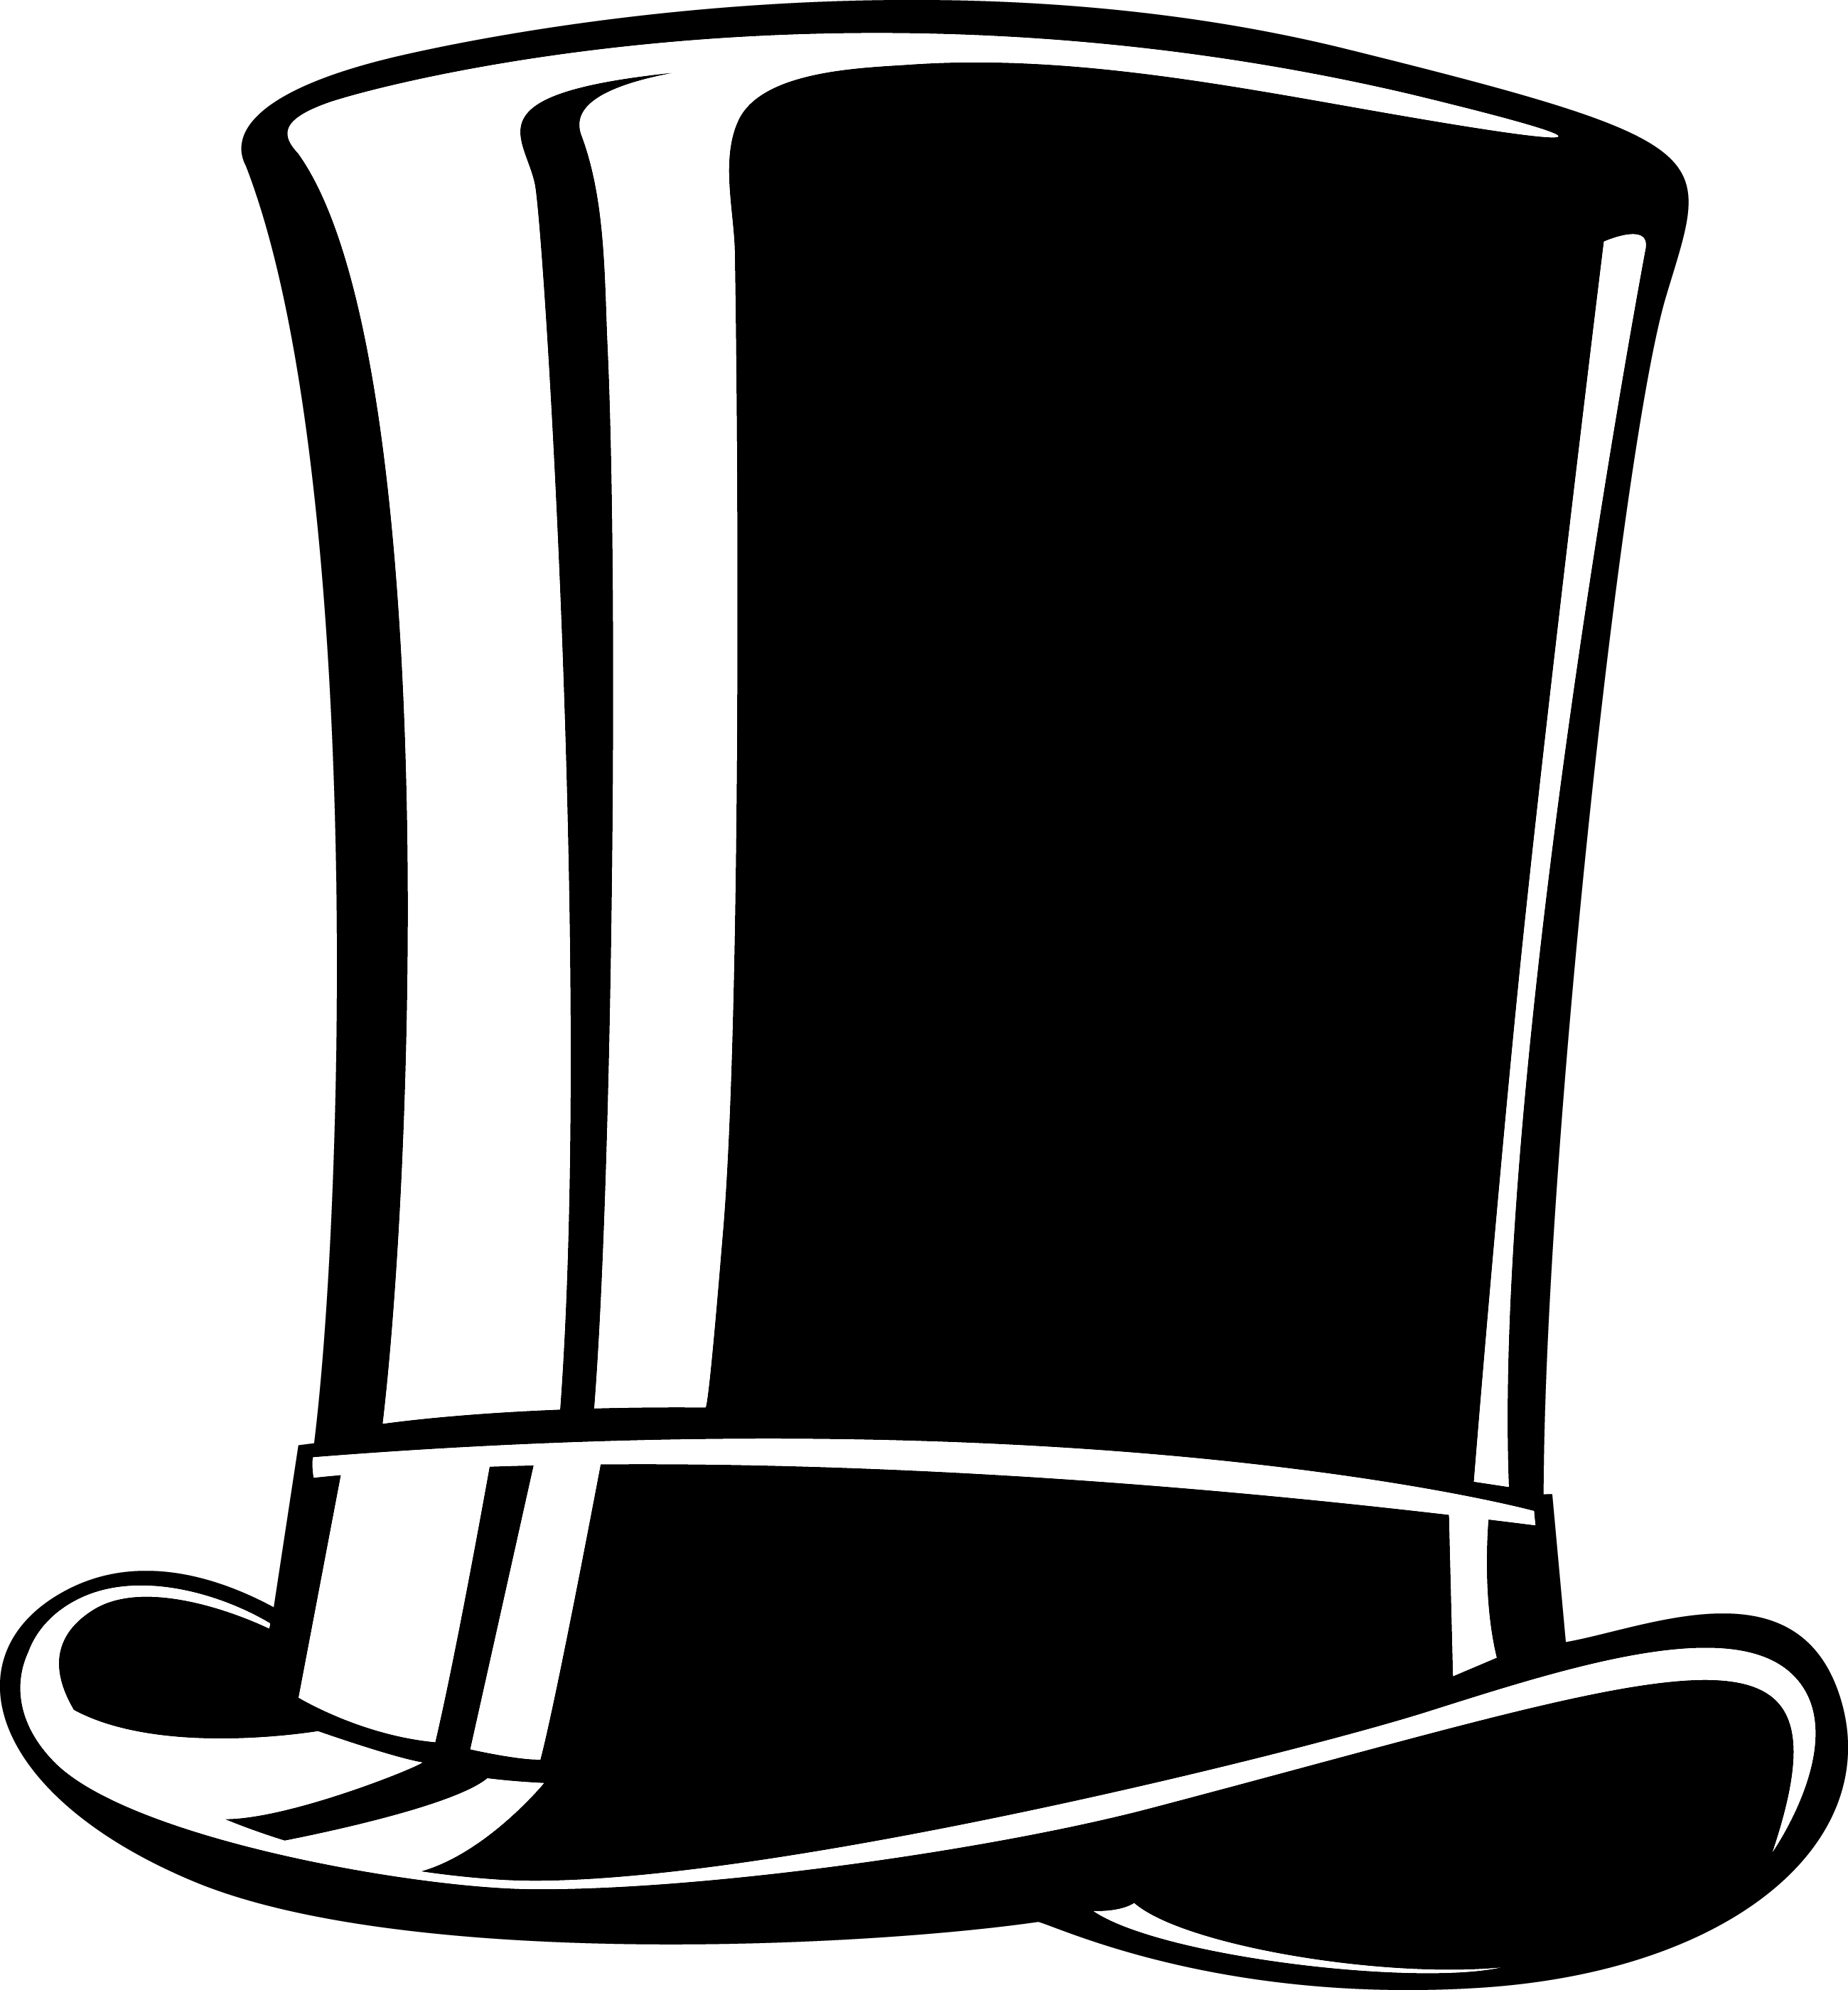 Abraham lincoln hat clipart picture 26 Images of Abraham Lincoln Top Hat Template | bfegy.com picture